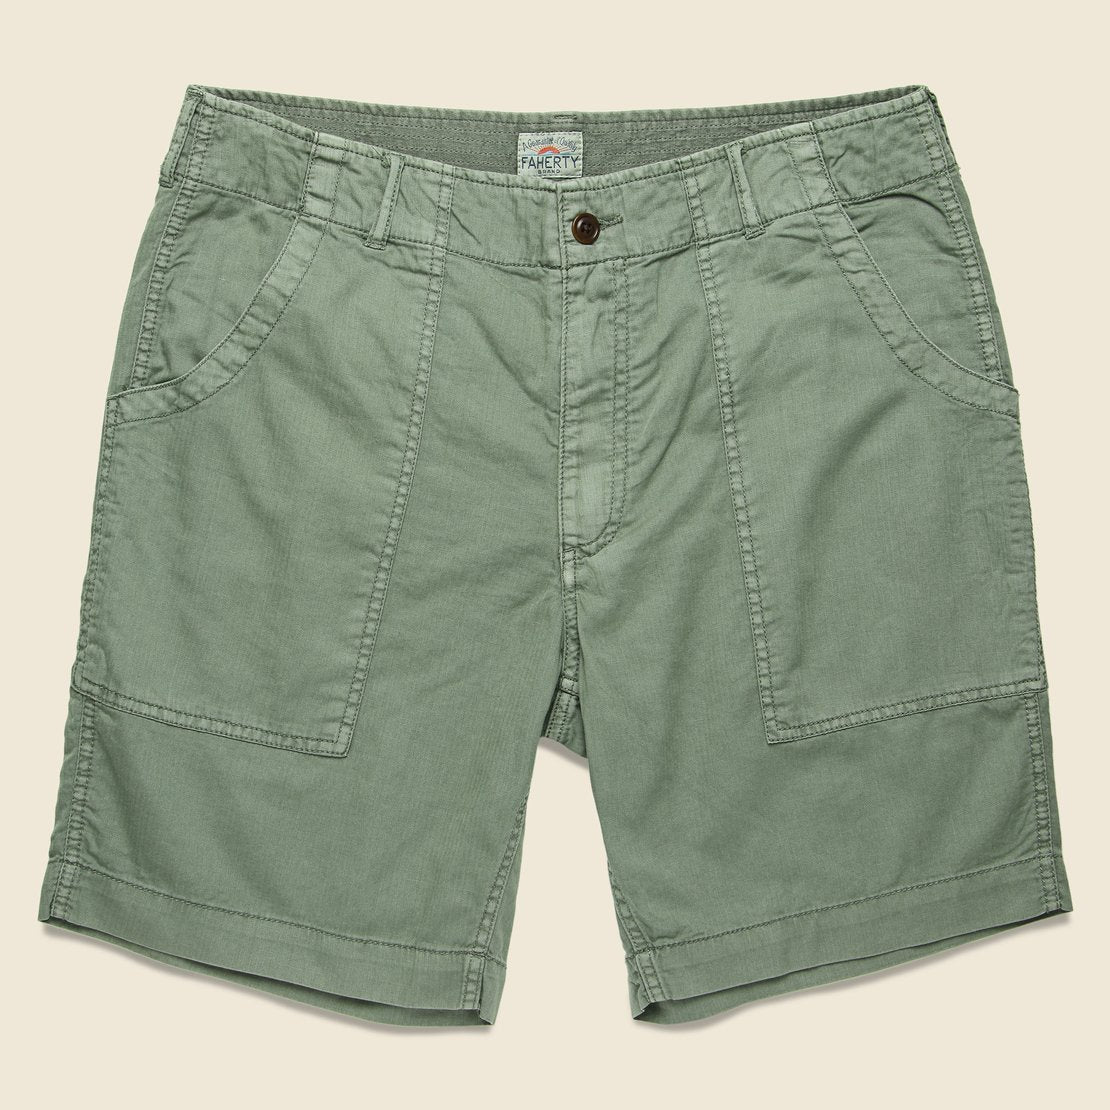 Faherty Camp Short - Olive